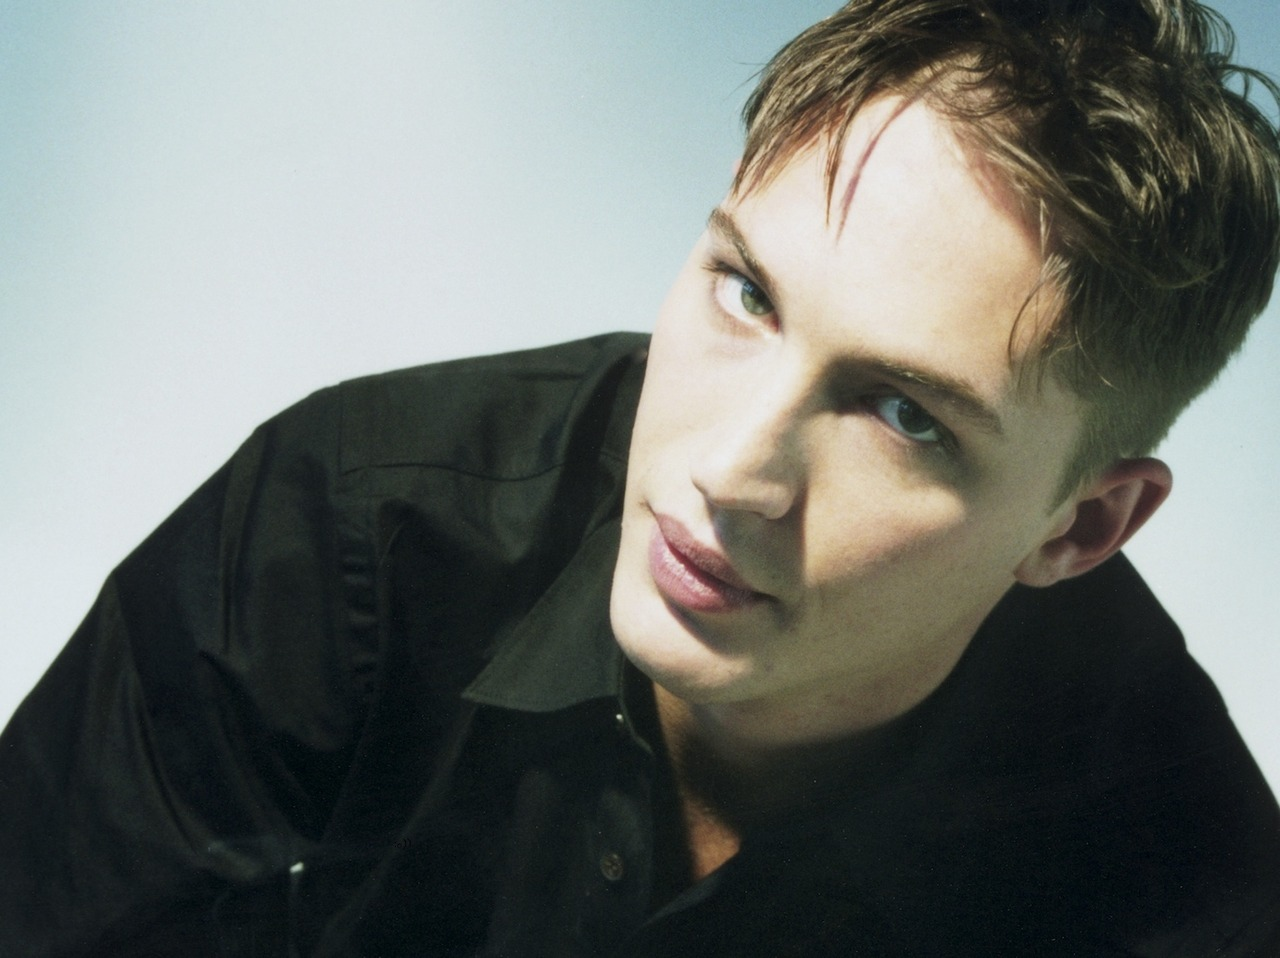 Tom Hardy younger photo two at pinterest.com